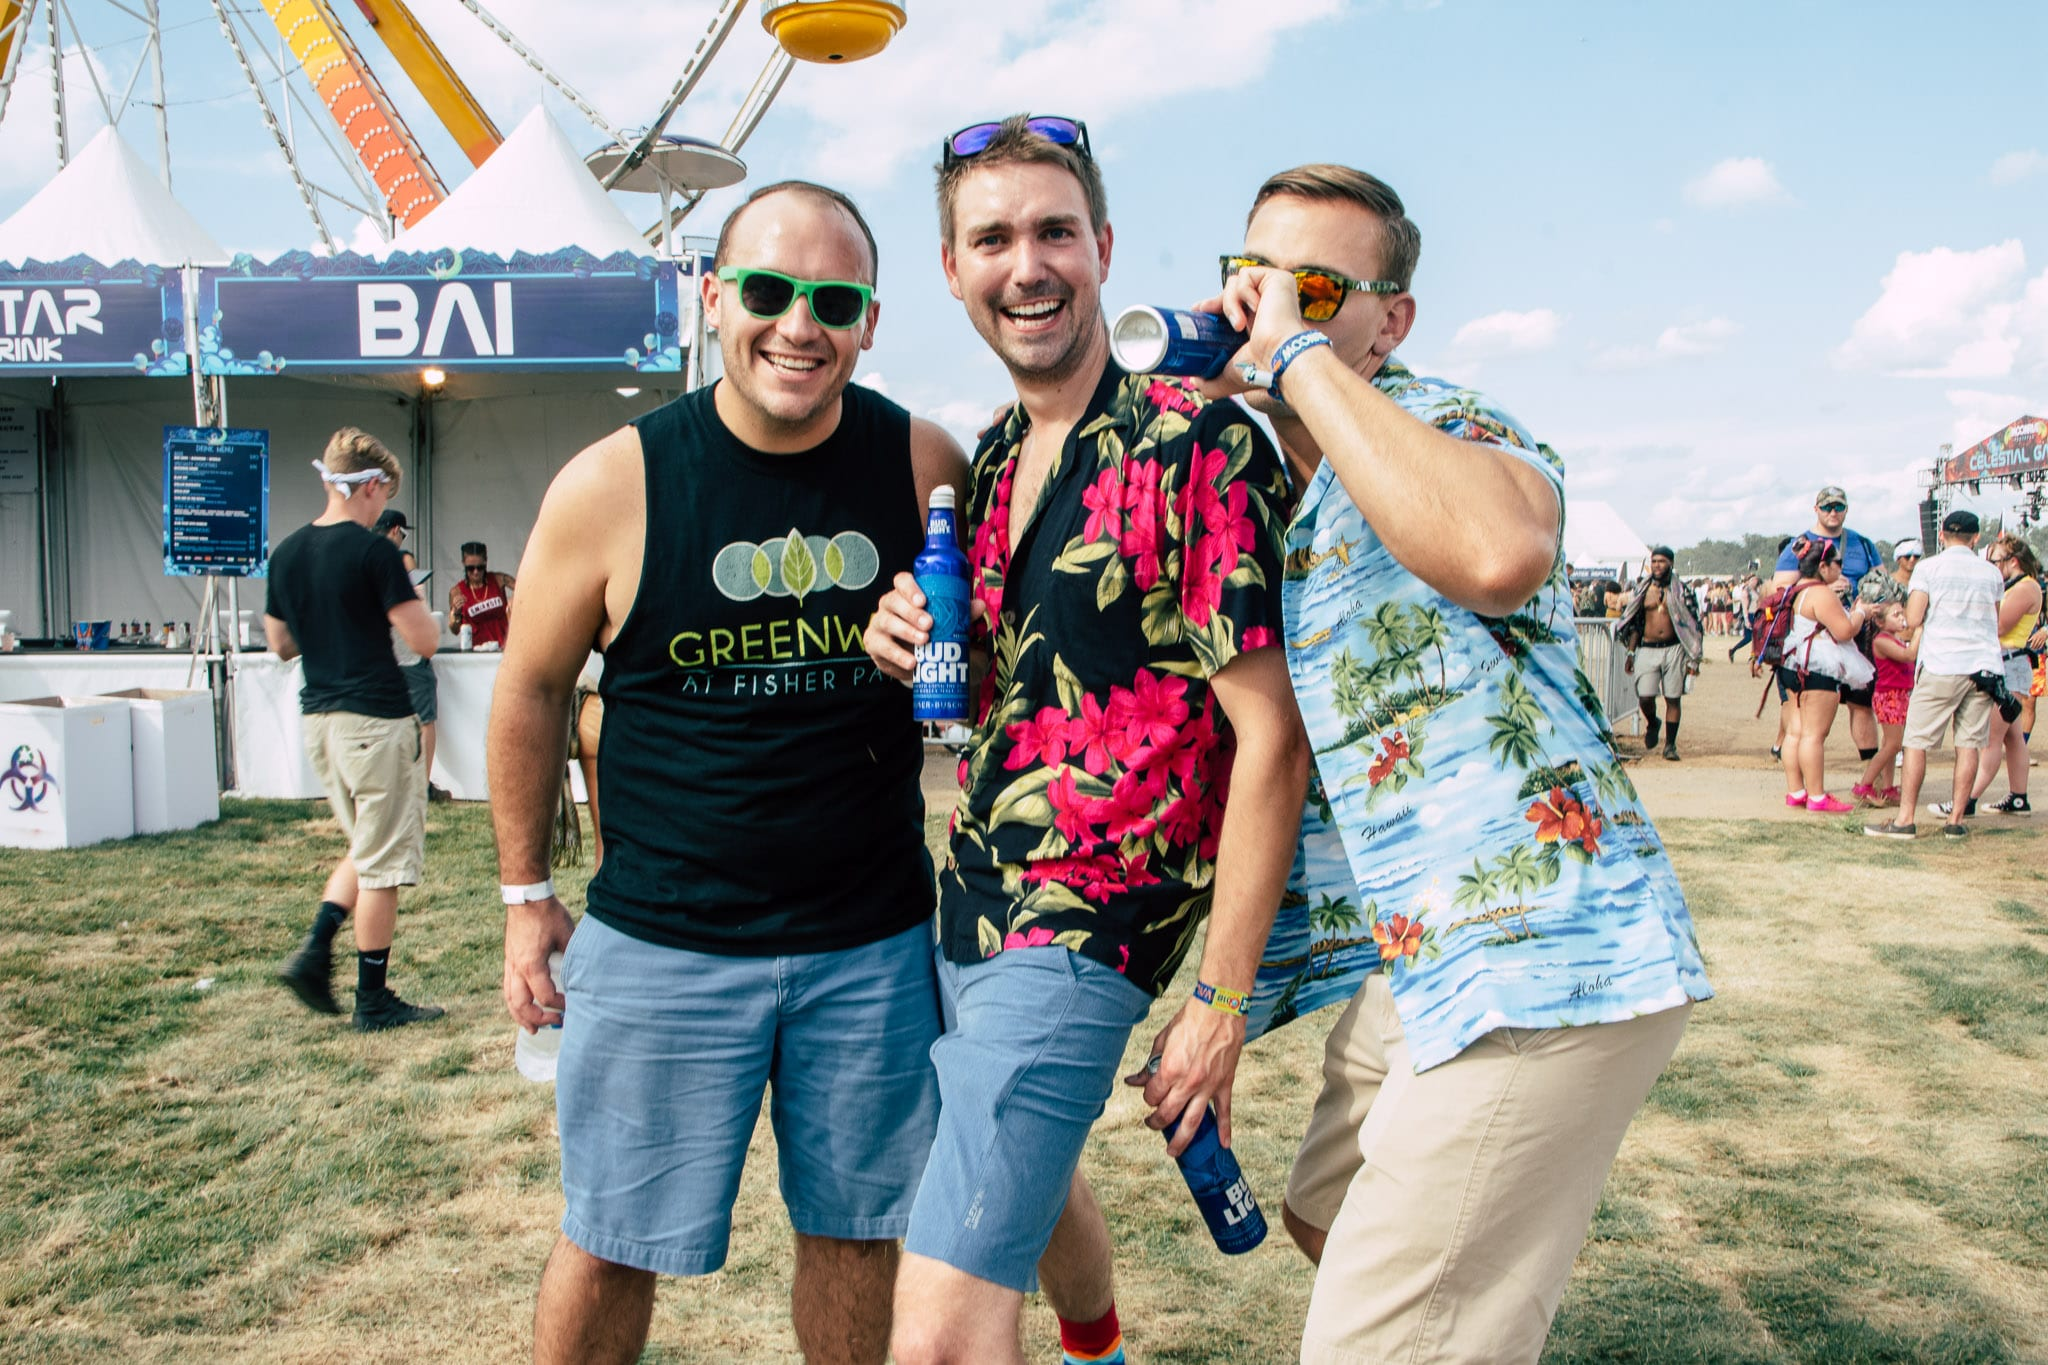 Rain, Mud, and Lots of Bass: Moonrise Festival Overcomes All Odds as